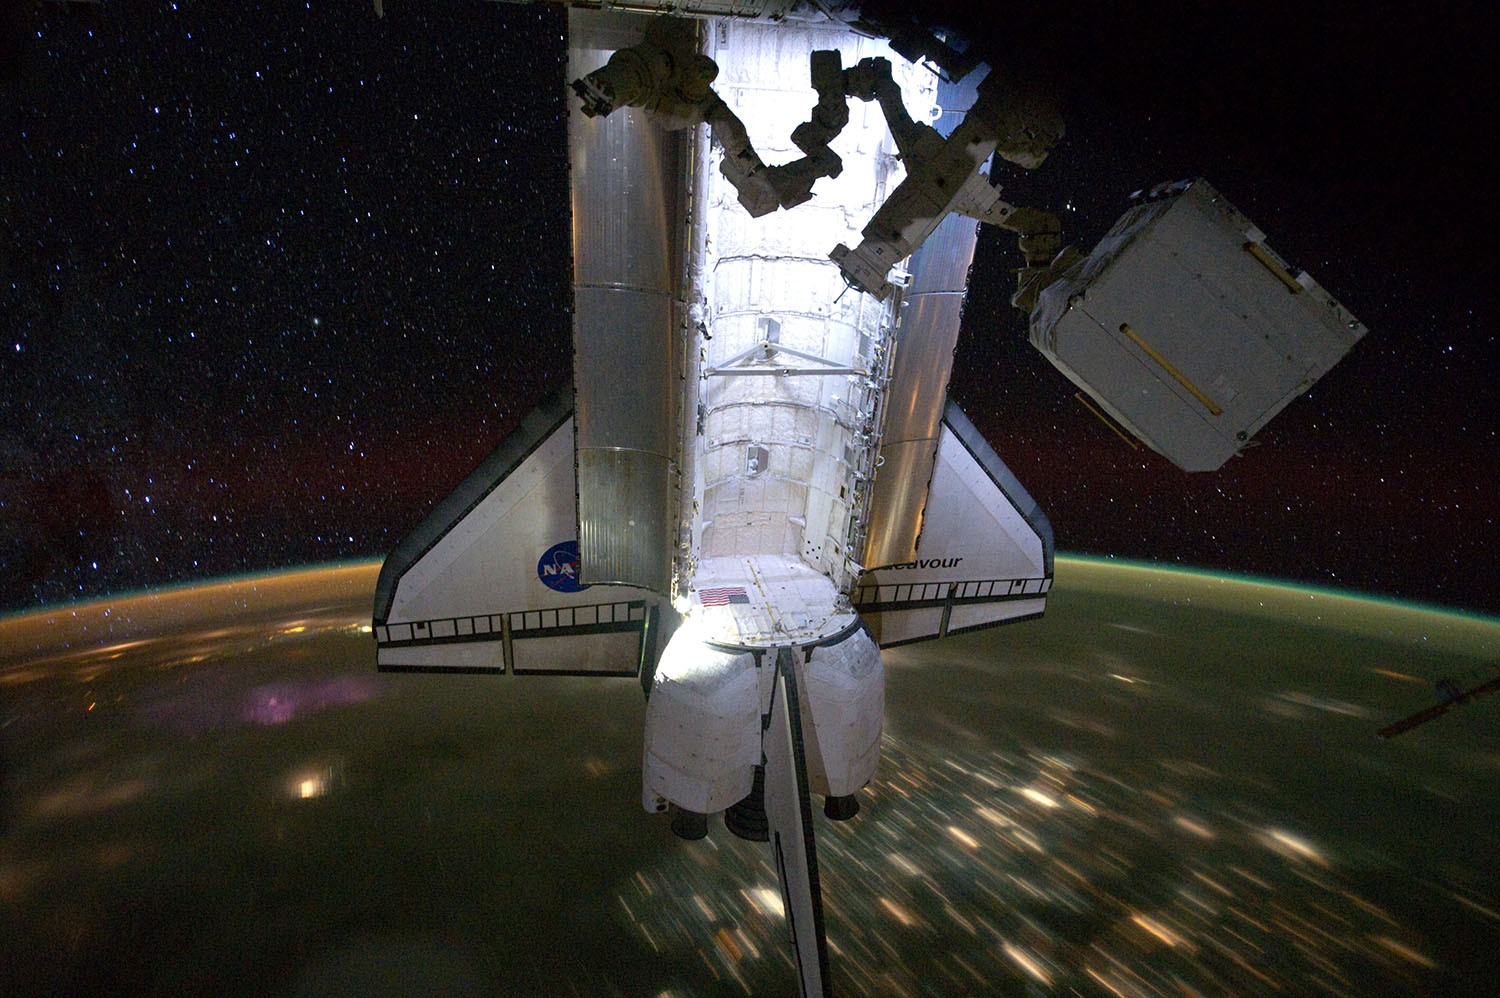 Space Shuttle Endeavour docked to the International Space Station. Credit: NASA